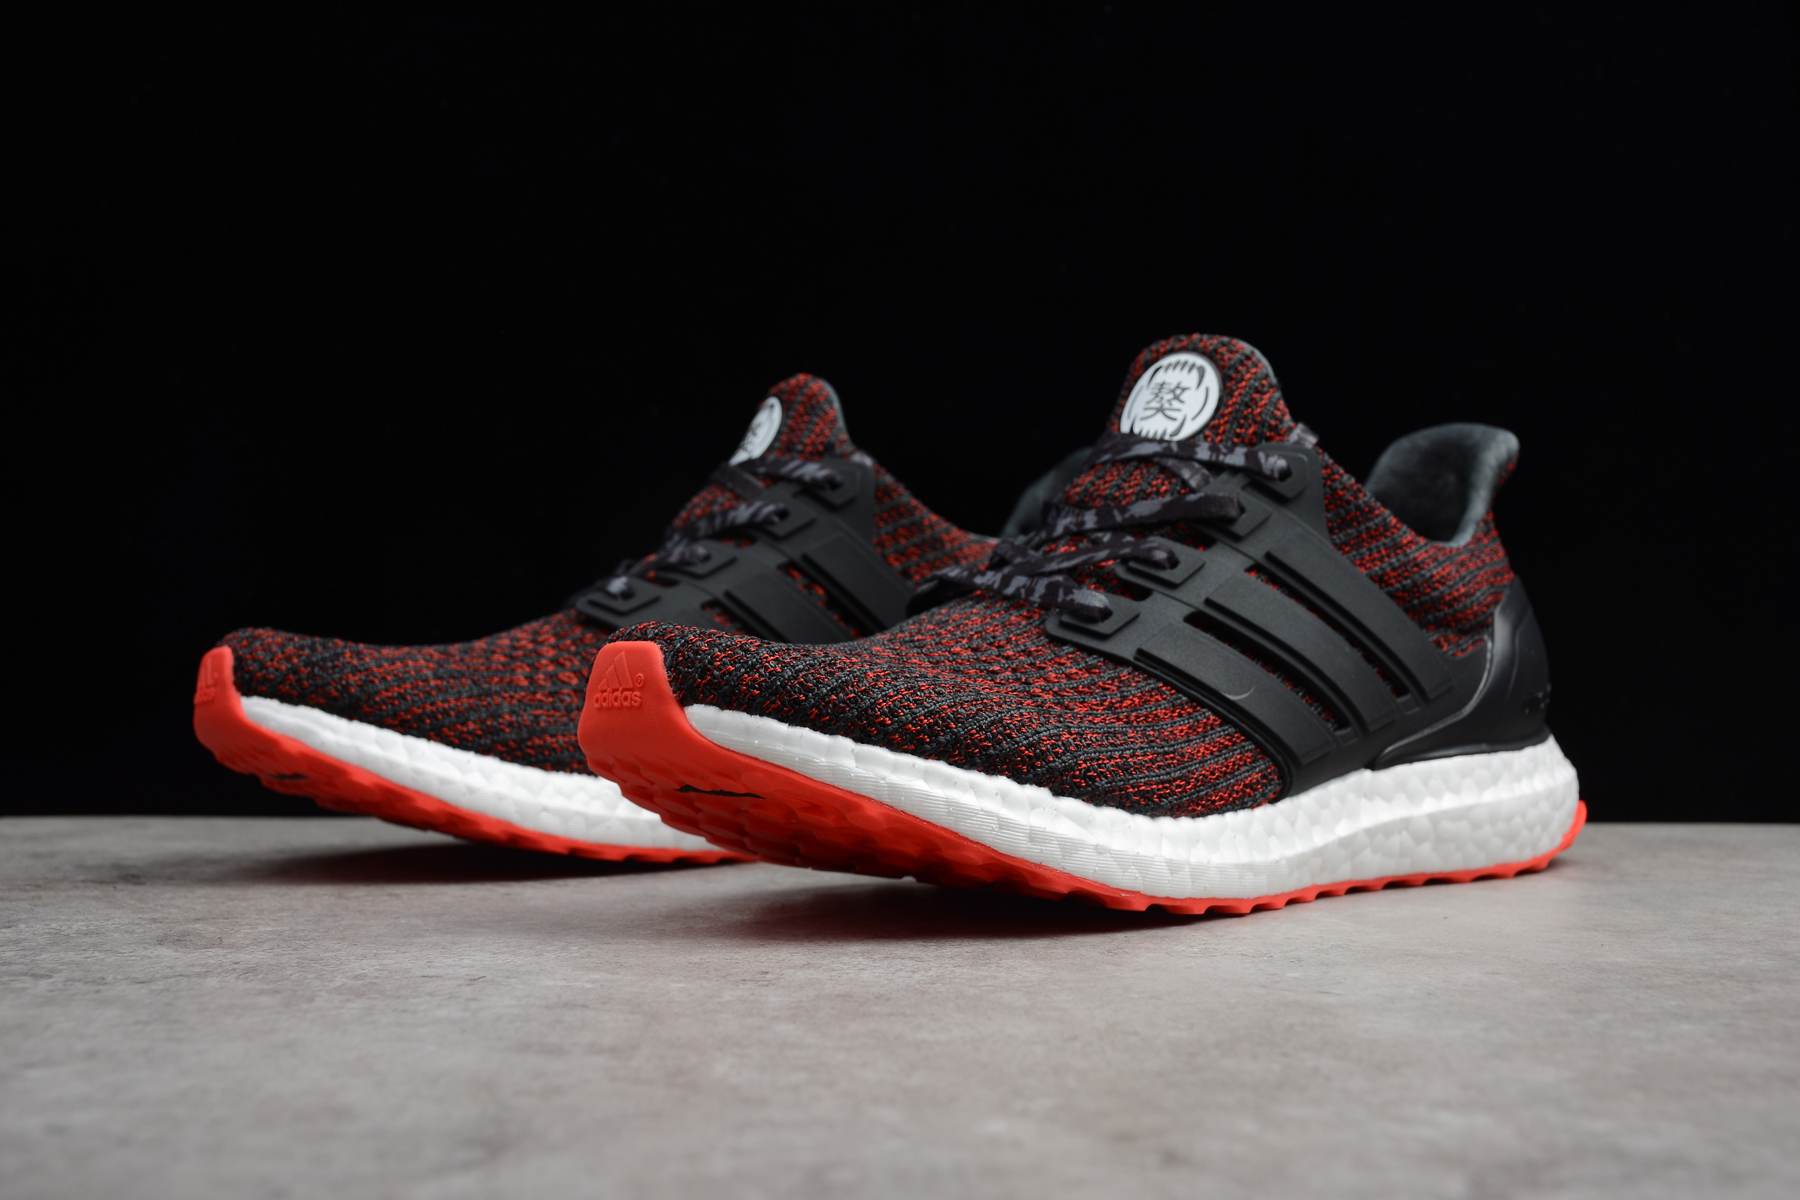 c2bec9728 adidas Ultra Boost 4.0 Chinese New Year CNY 2018 BB6173 US 11 12 Men s  Shoes Athletic Shoes